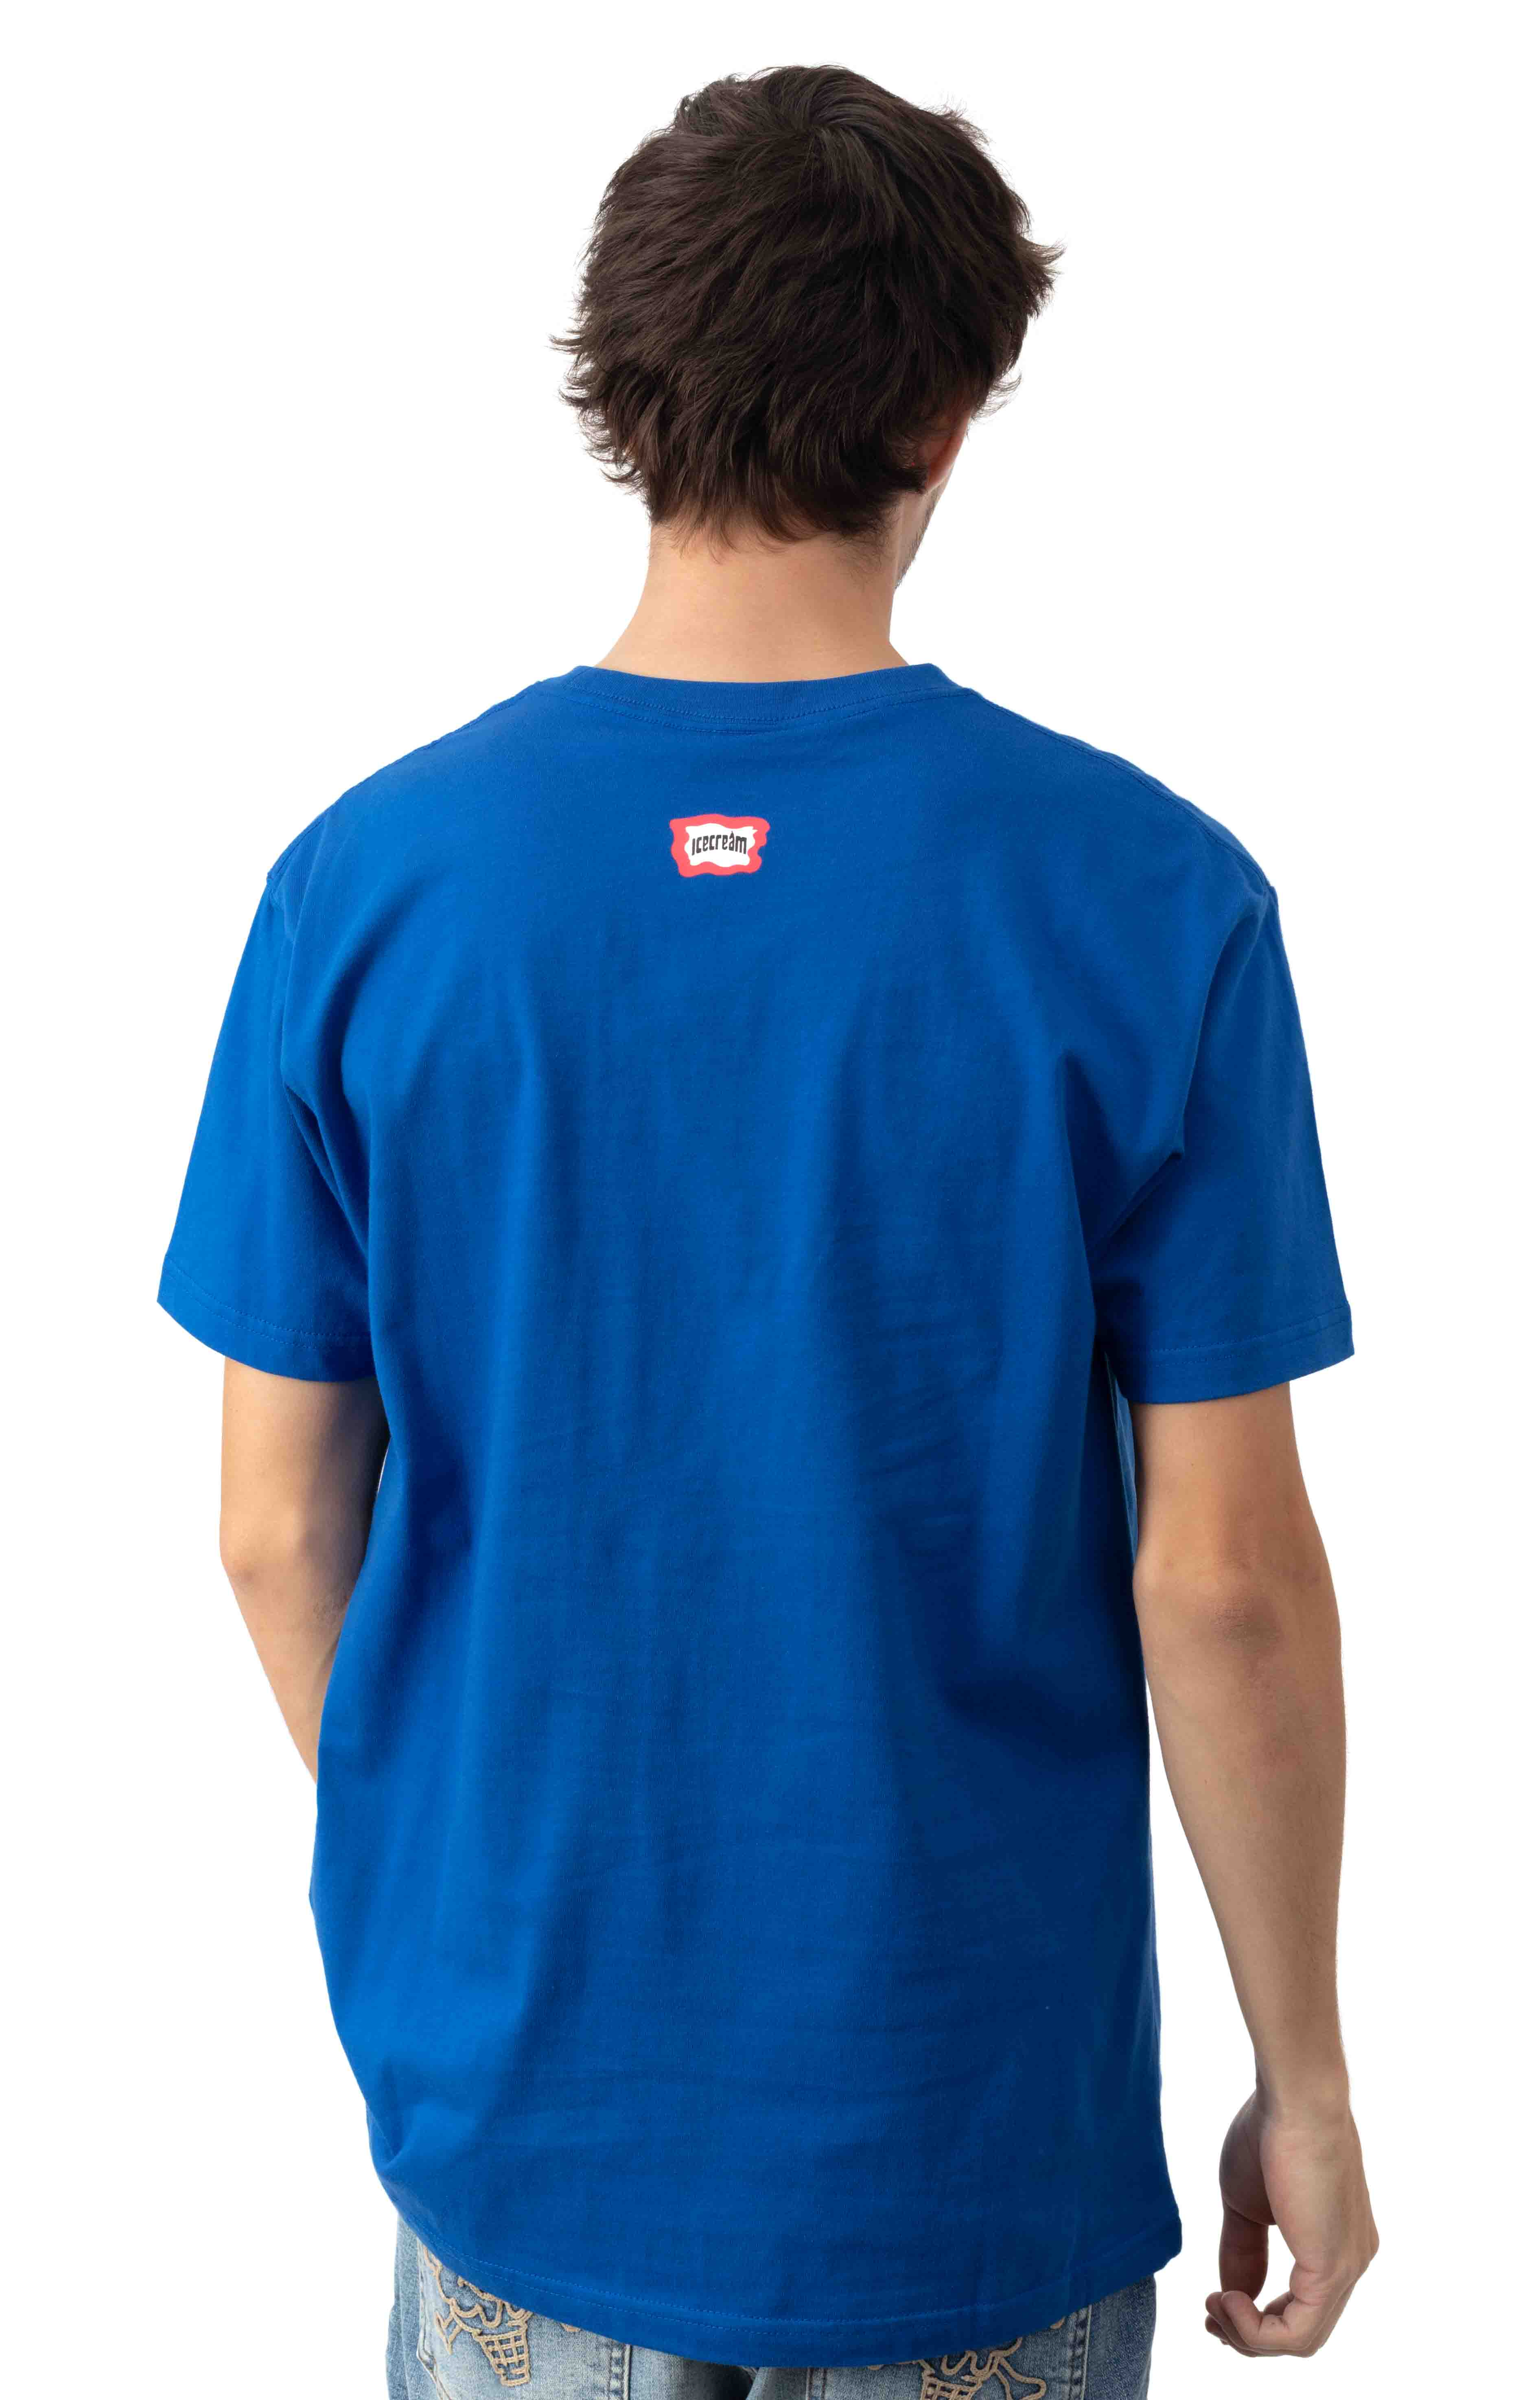 Wasted T-Shirt - Nautical Blue 3